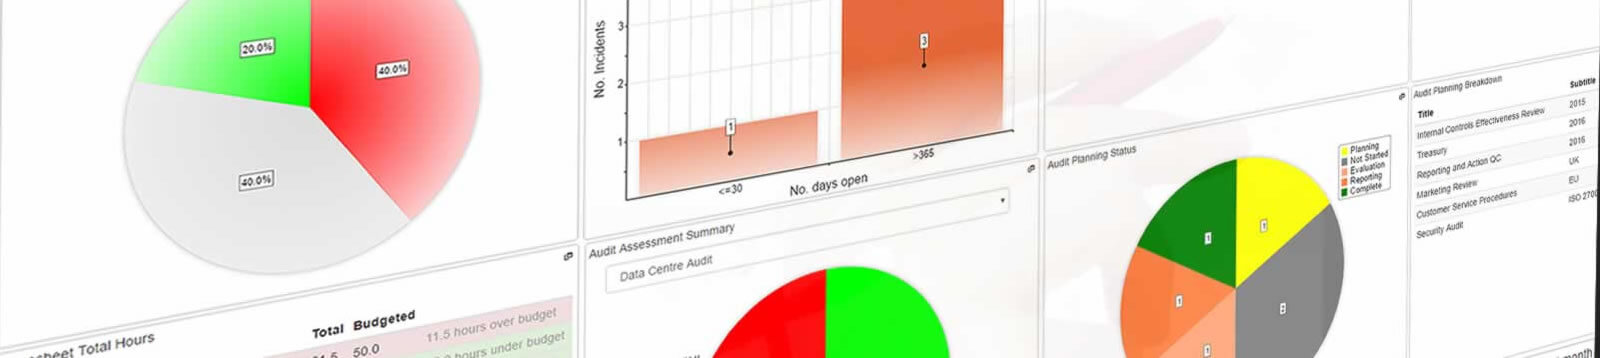 Example Risk and Audit reports